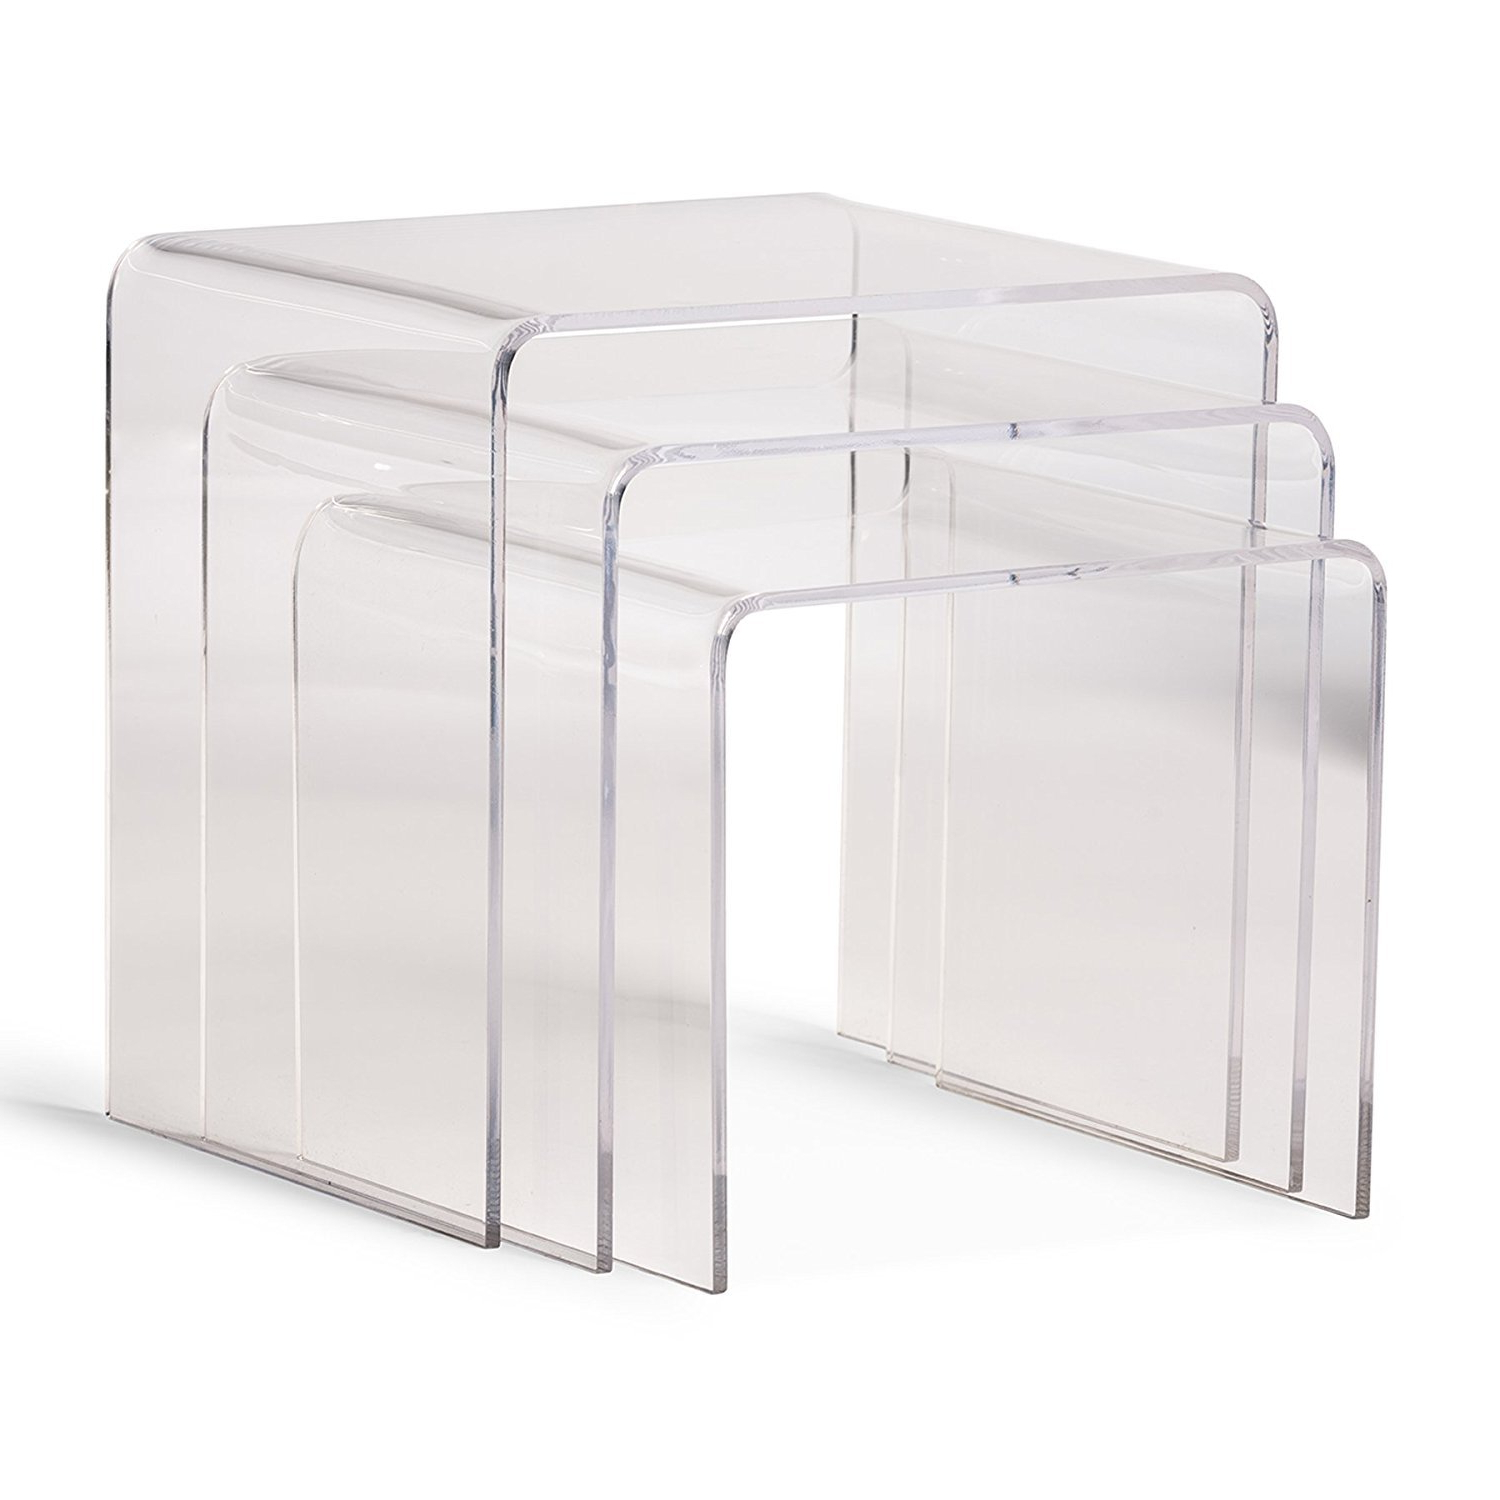 Old Acrylic Side Table Cb2 Peekaboo Lucite Coffe Table Lucite Trunk With Regard To Newest Peekaboo Acrylic Coffee Tables (View 14 of 20)